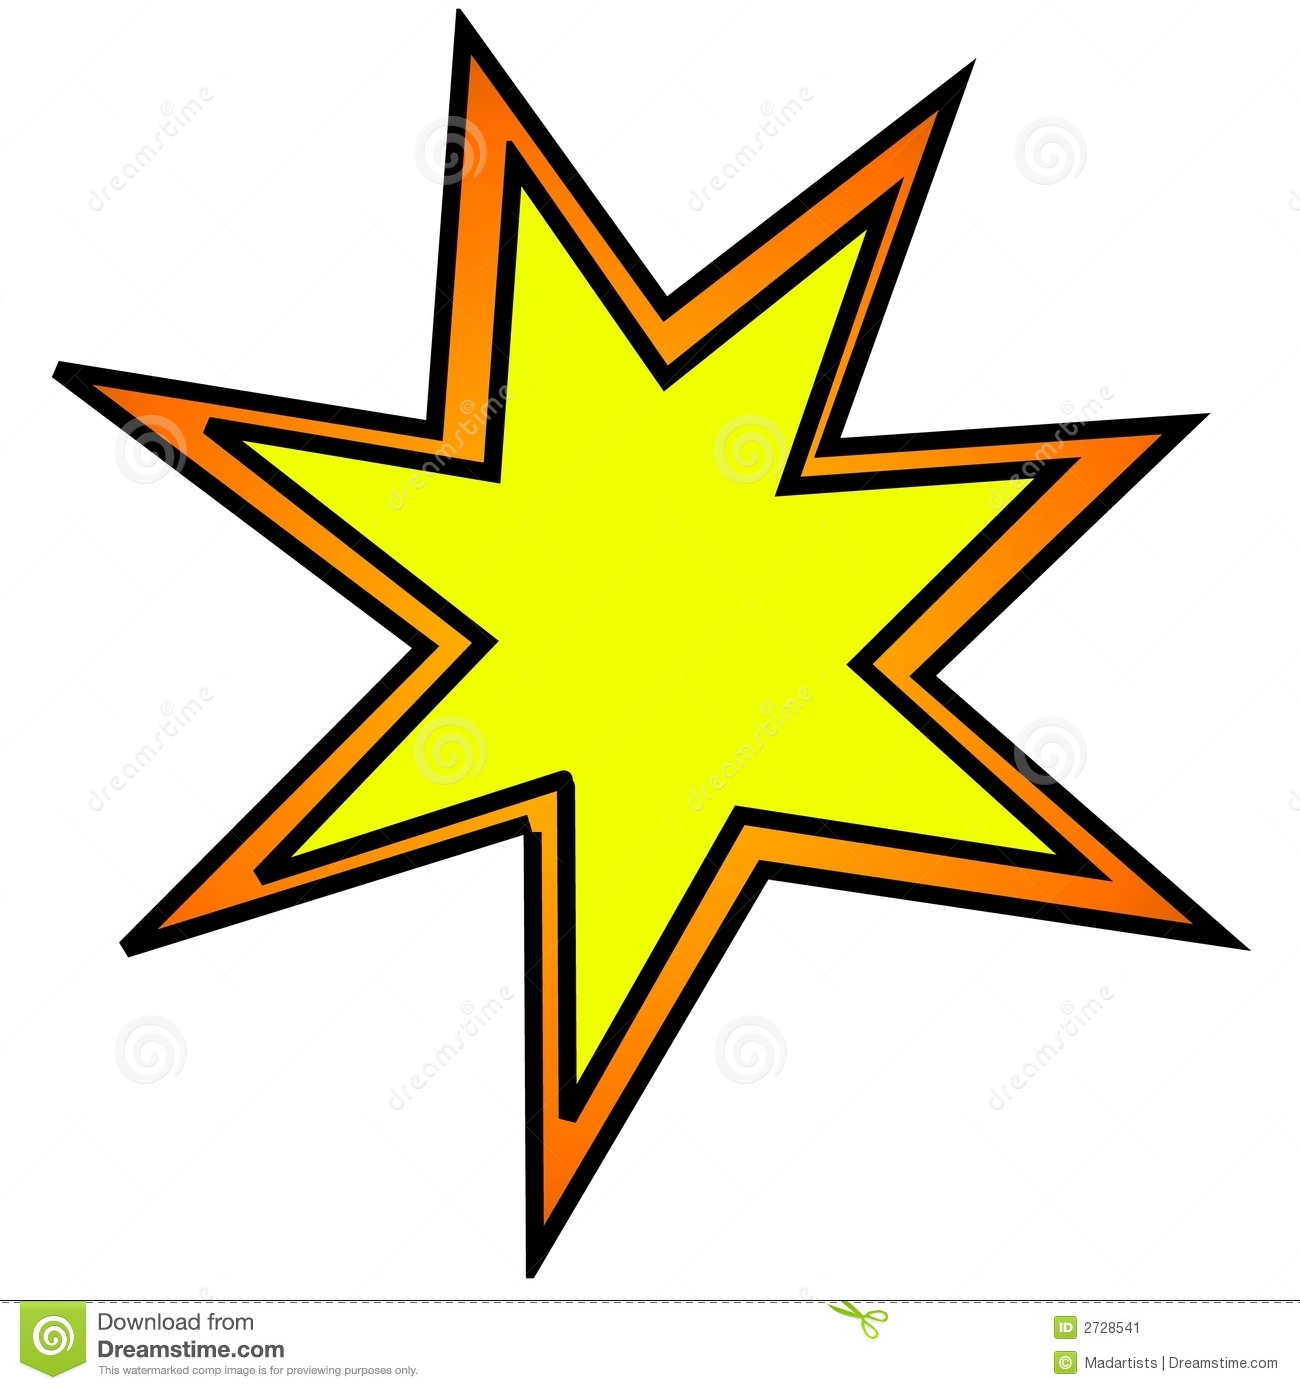 Bang Clip Art Cartoon bang explosion clipart stock image - image ...